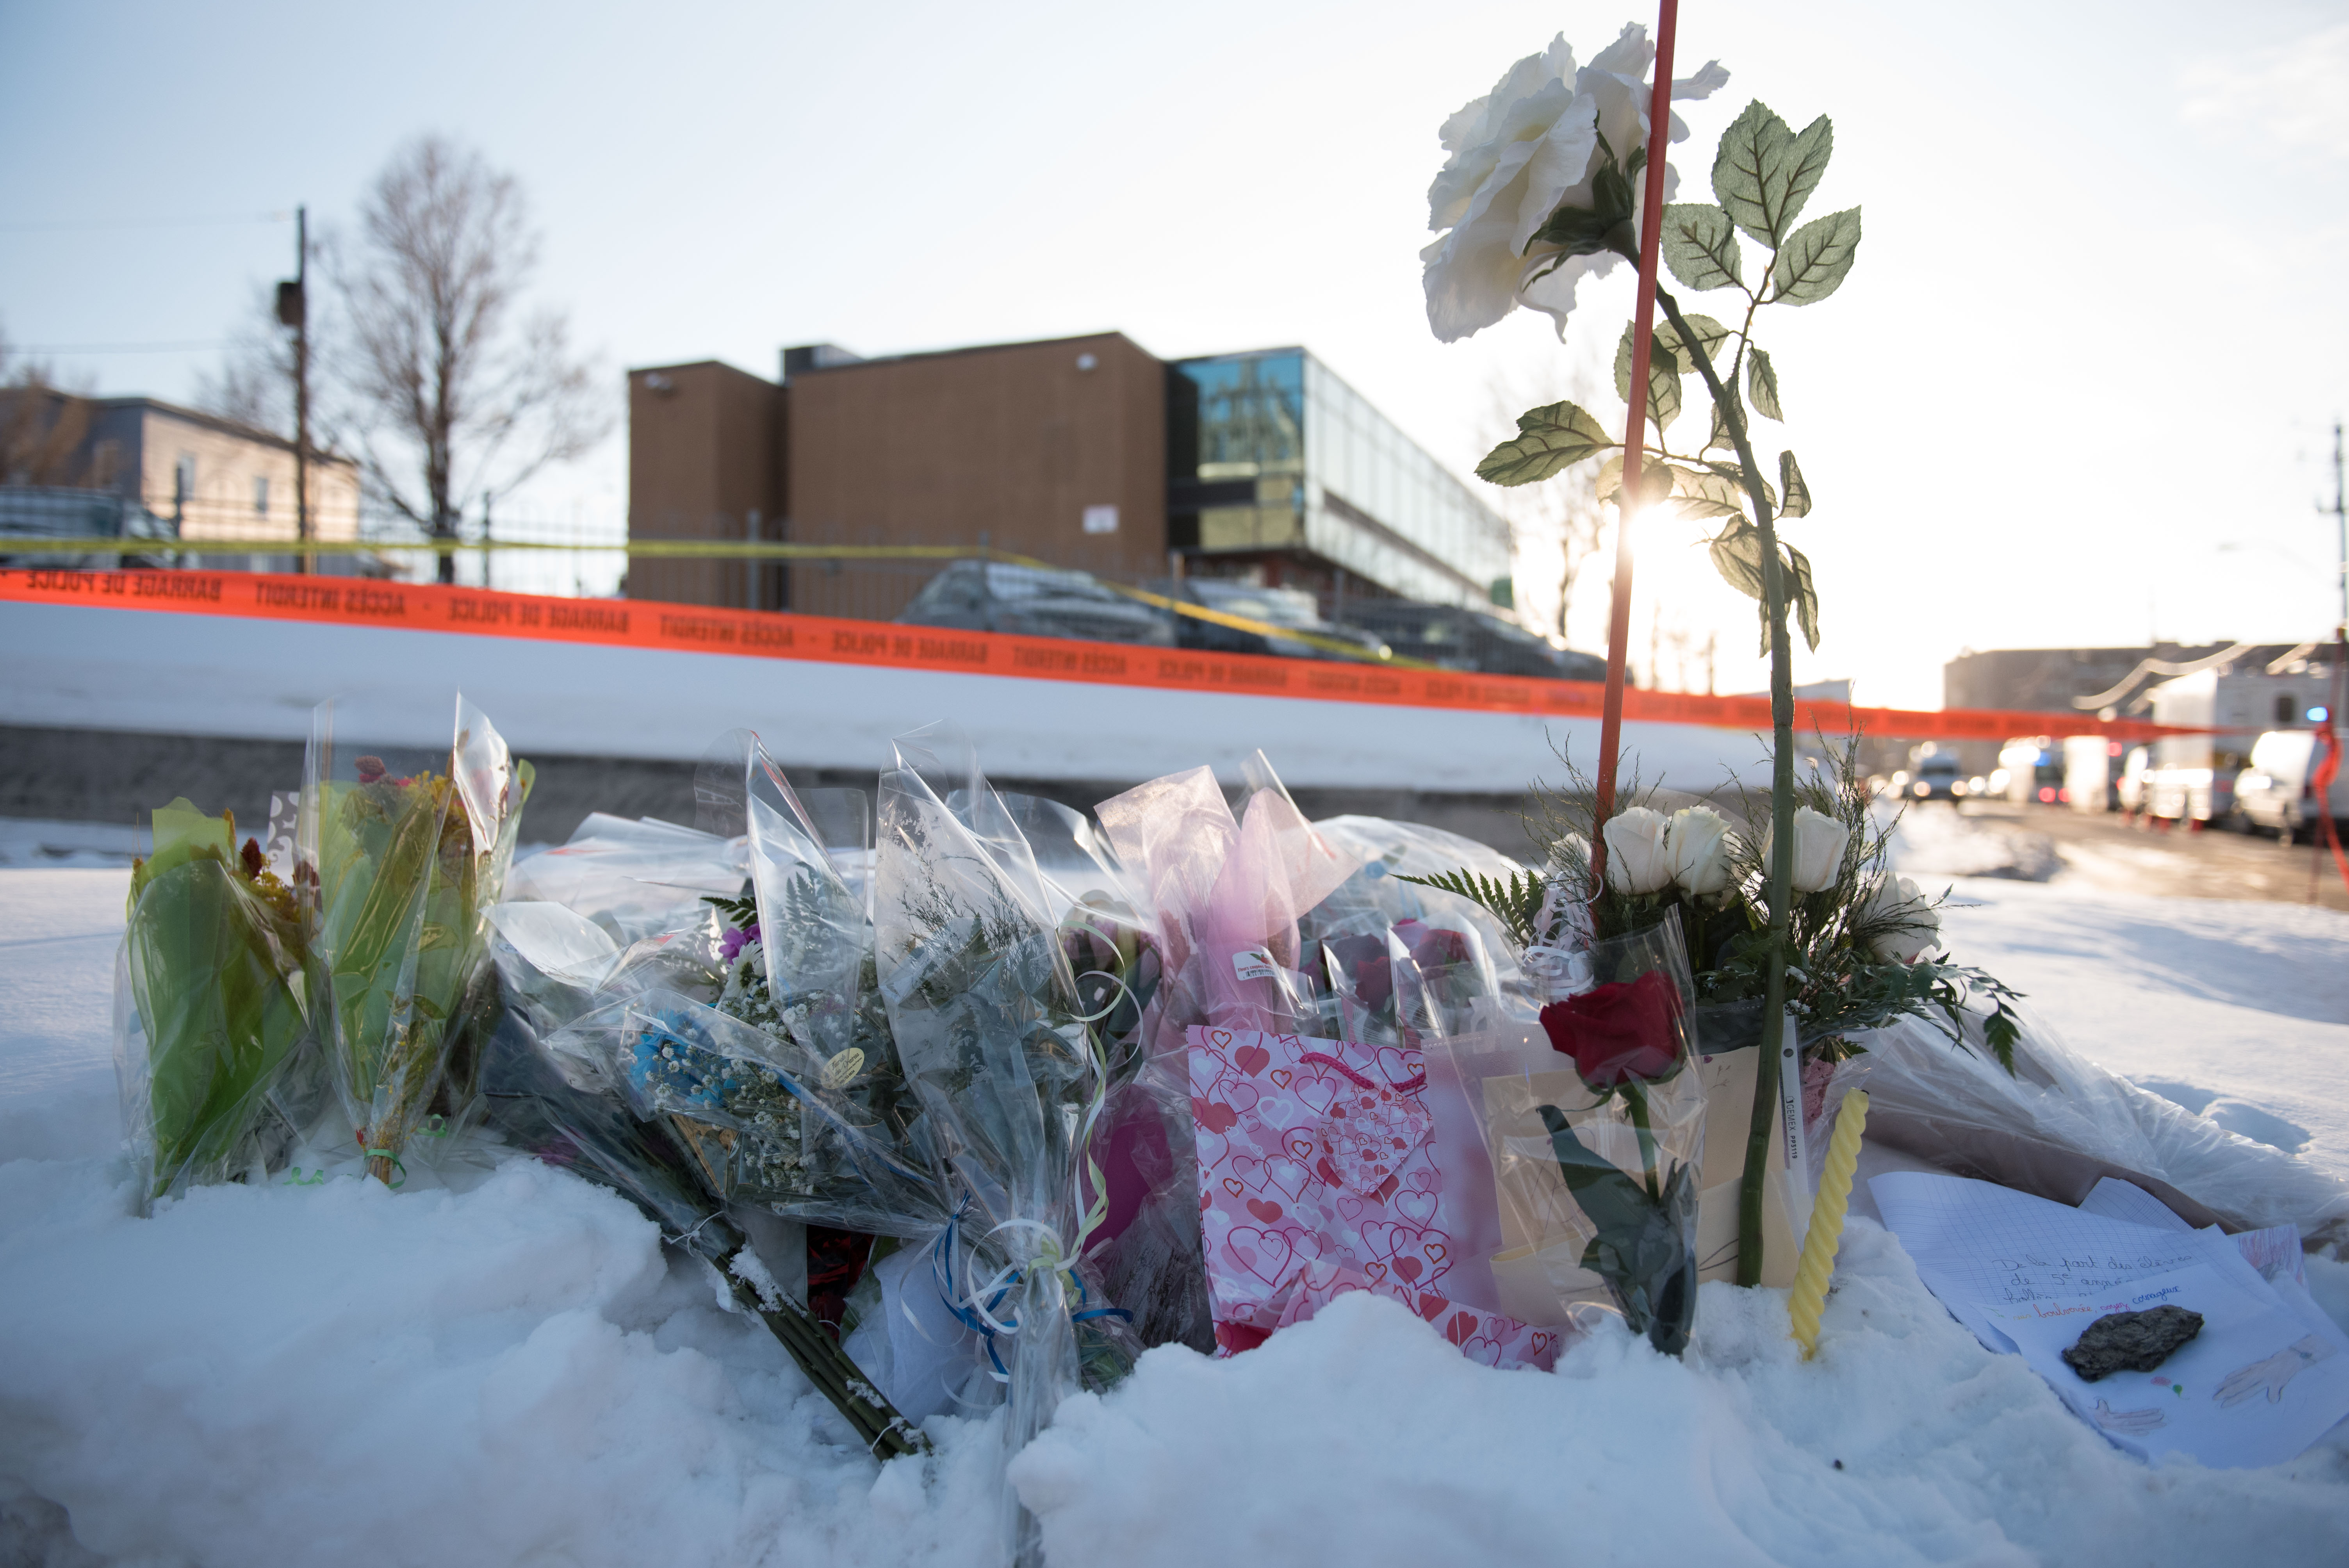 Flowers at a makeshift memorial near the Islamic Cultural Center in Quebec City, Canada (credit: ALICE CHICHE/AFP/Getty Images)